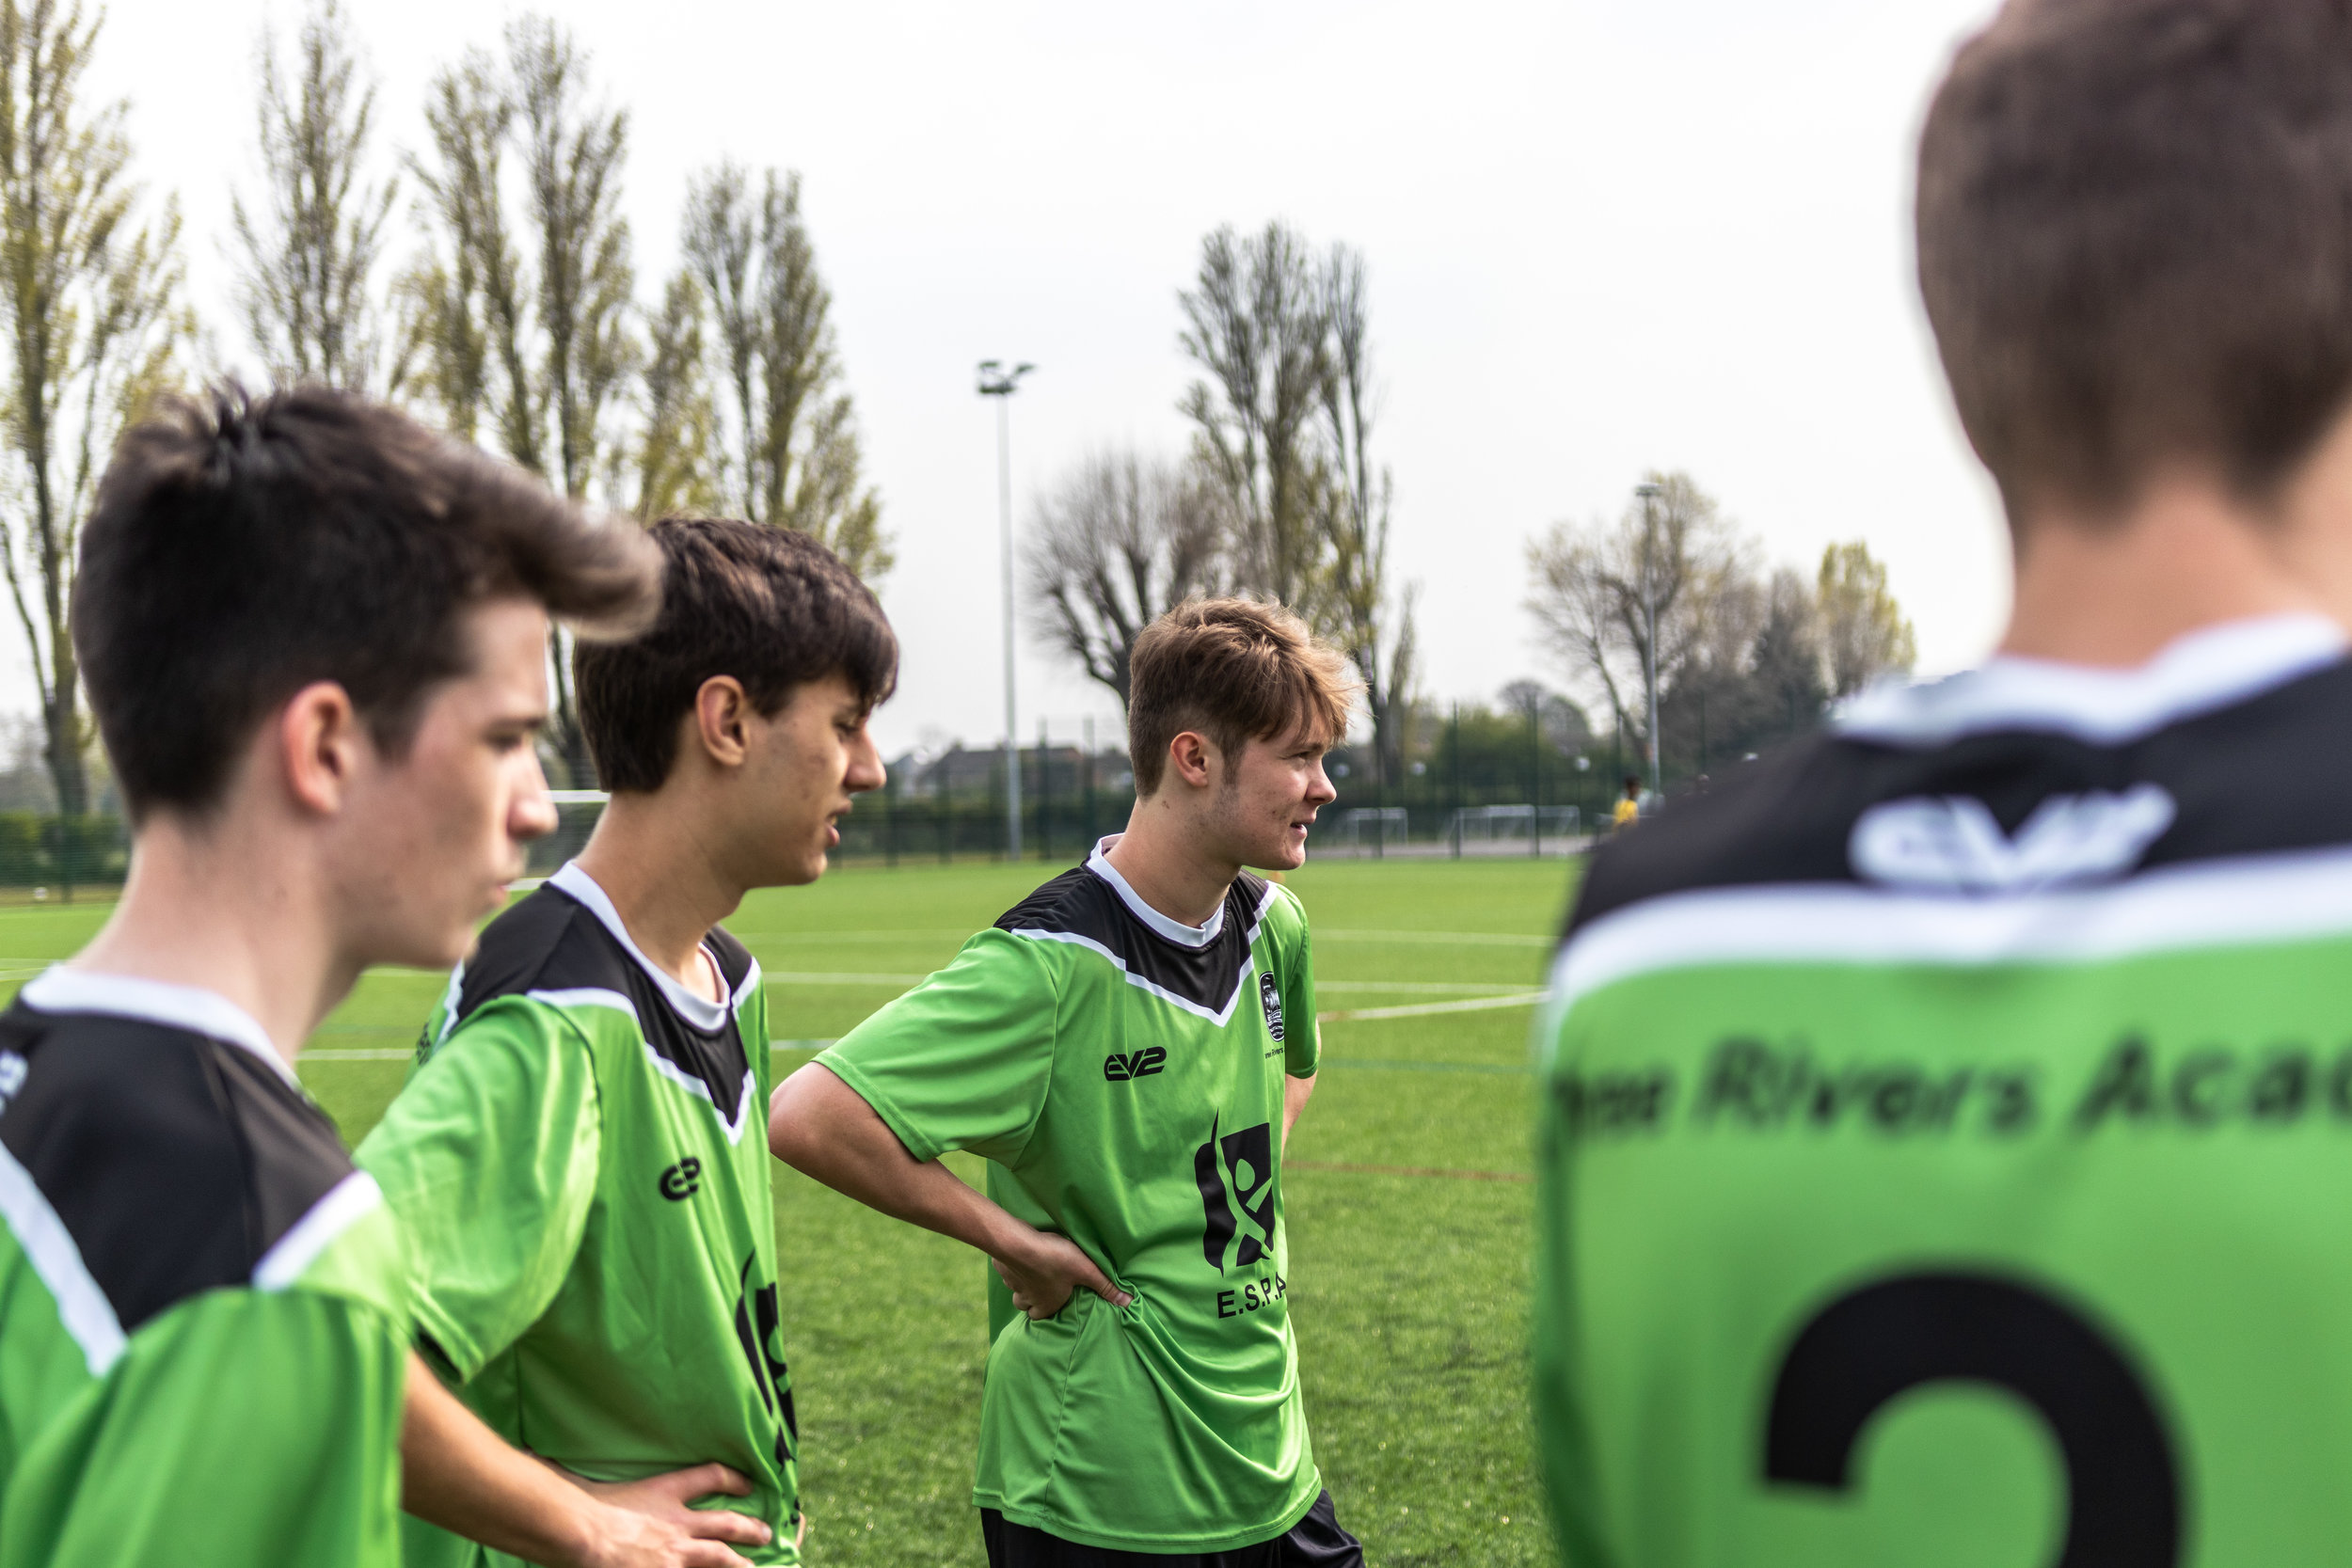 HOW TO BOOK - Find out how you can become part of Elite Leagues and set up your own 7 a side team!..